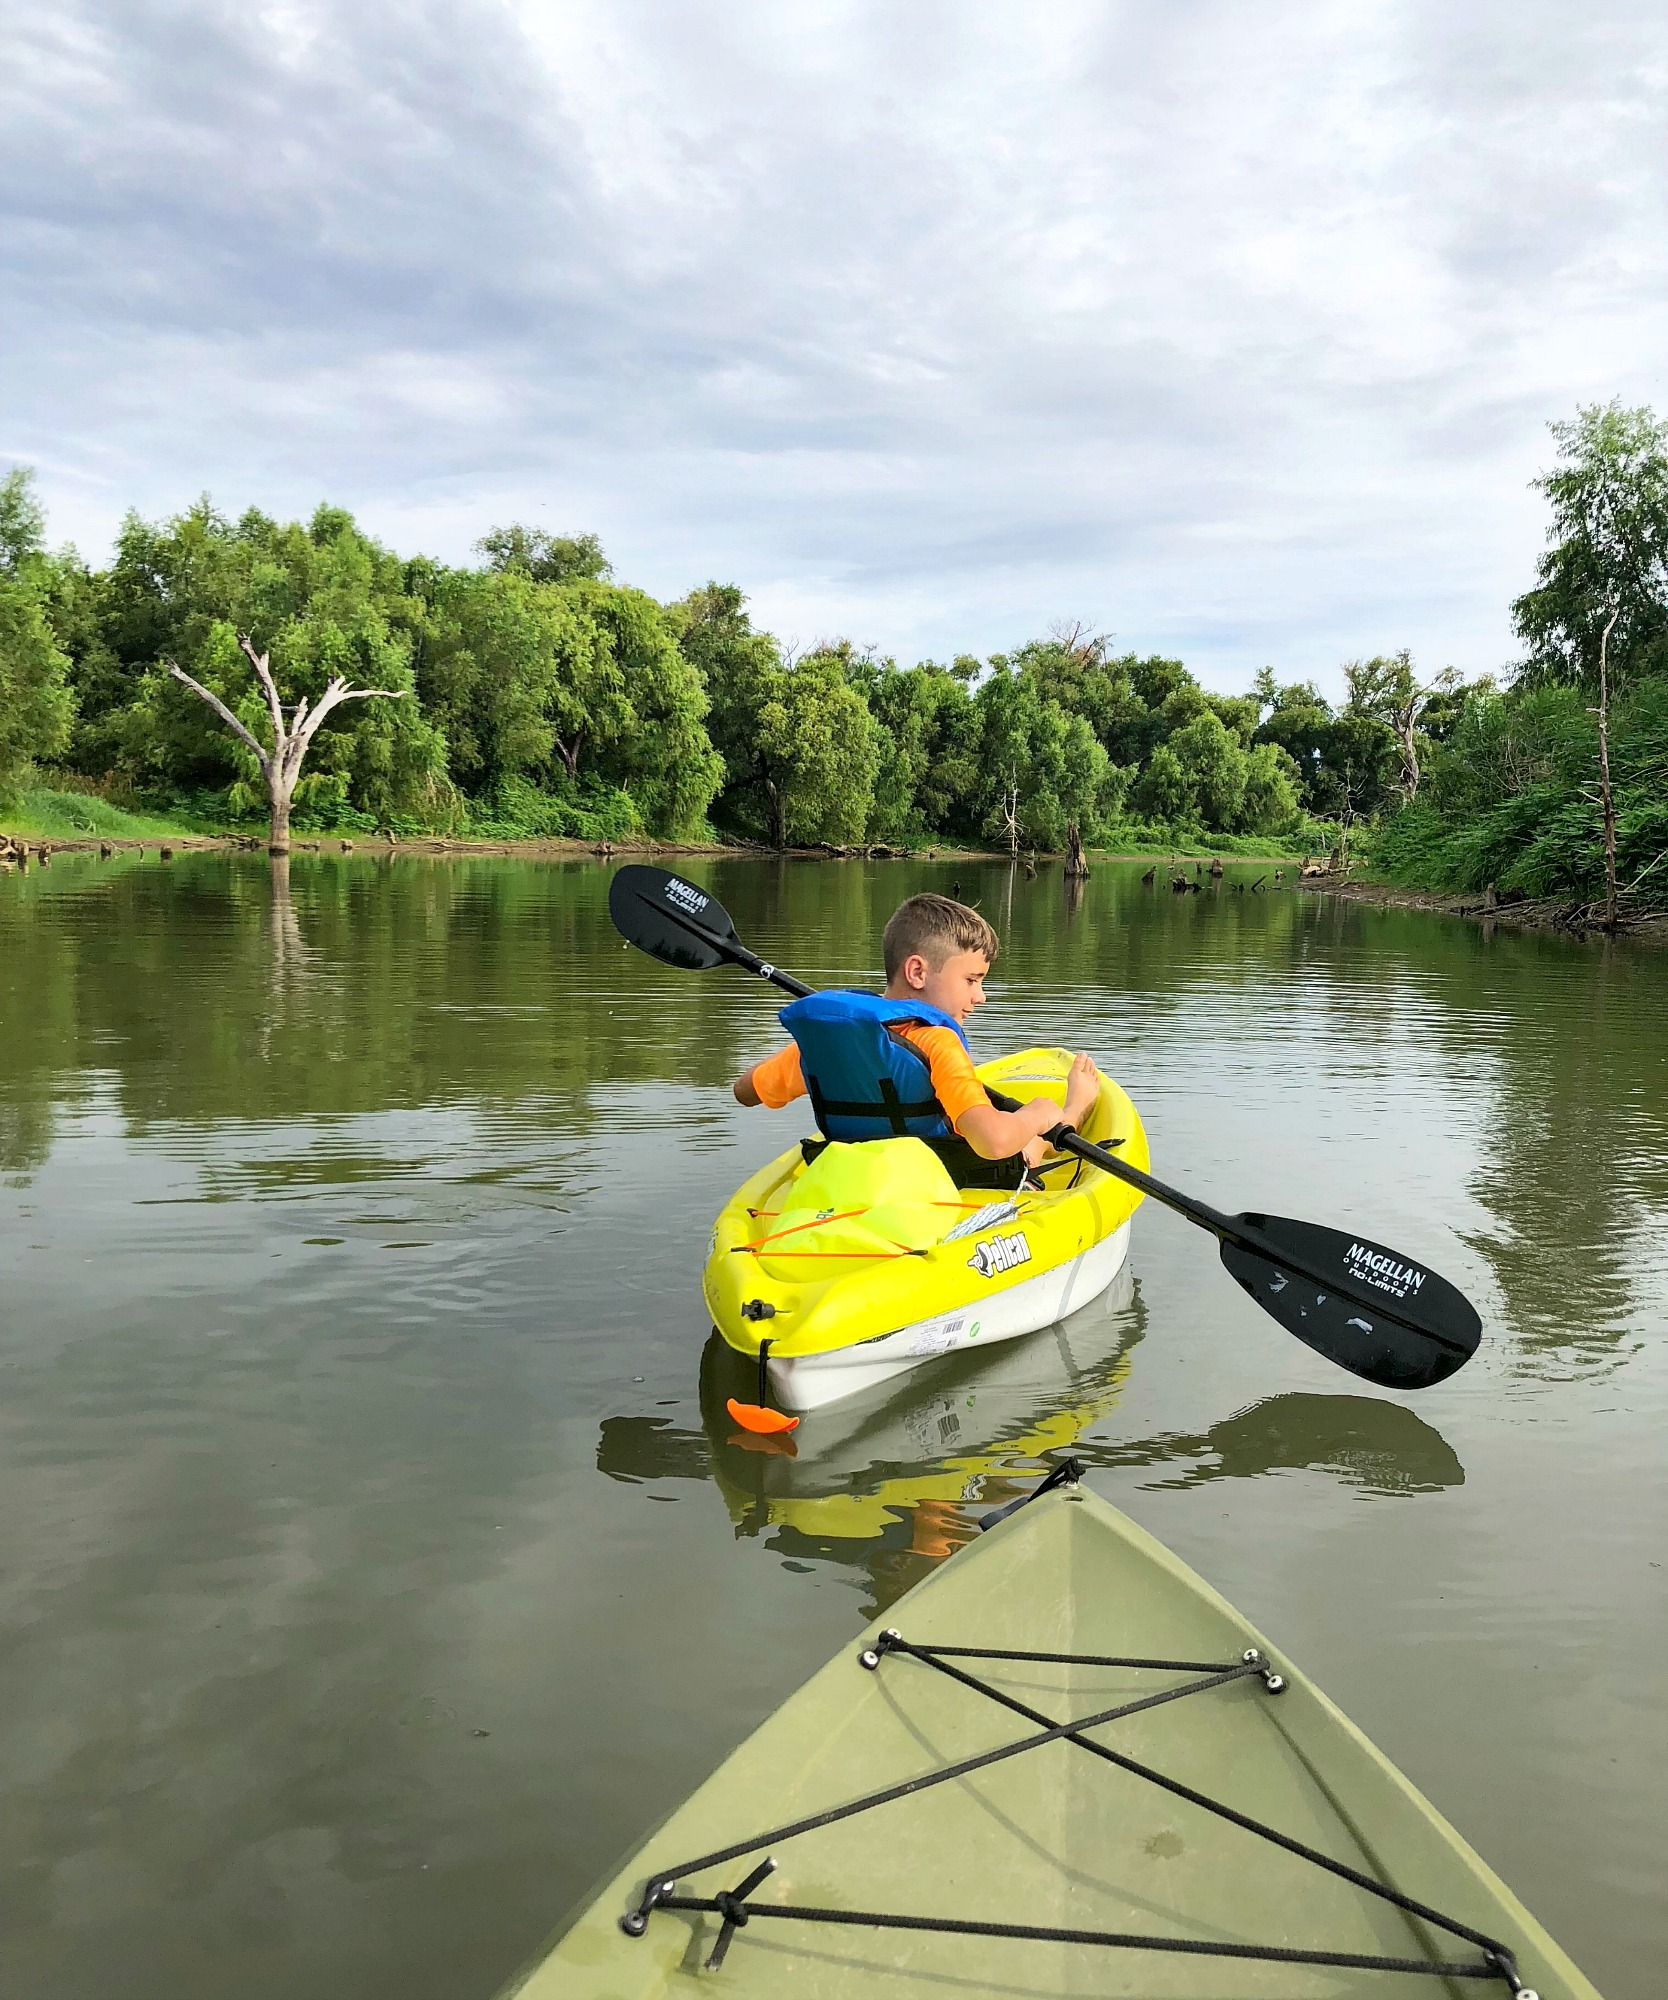 Noah kayaking the river